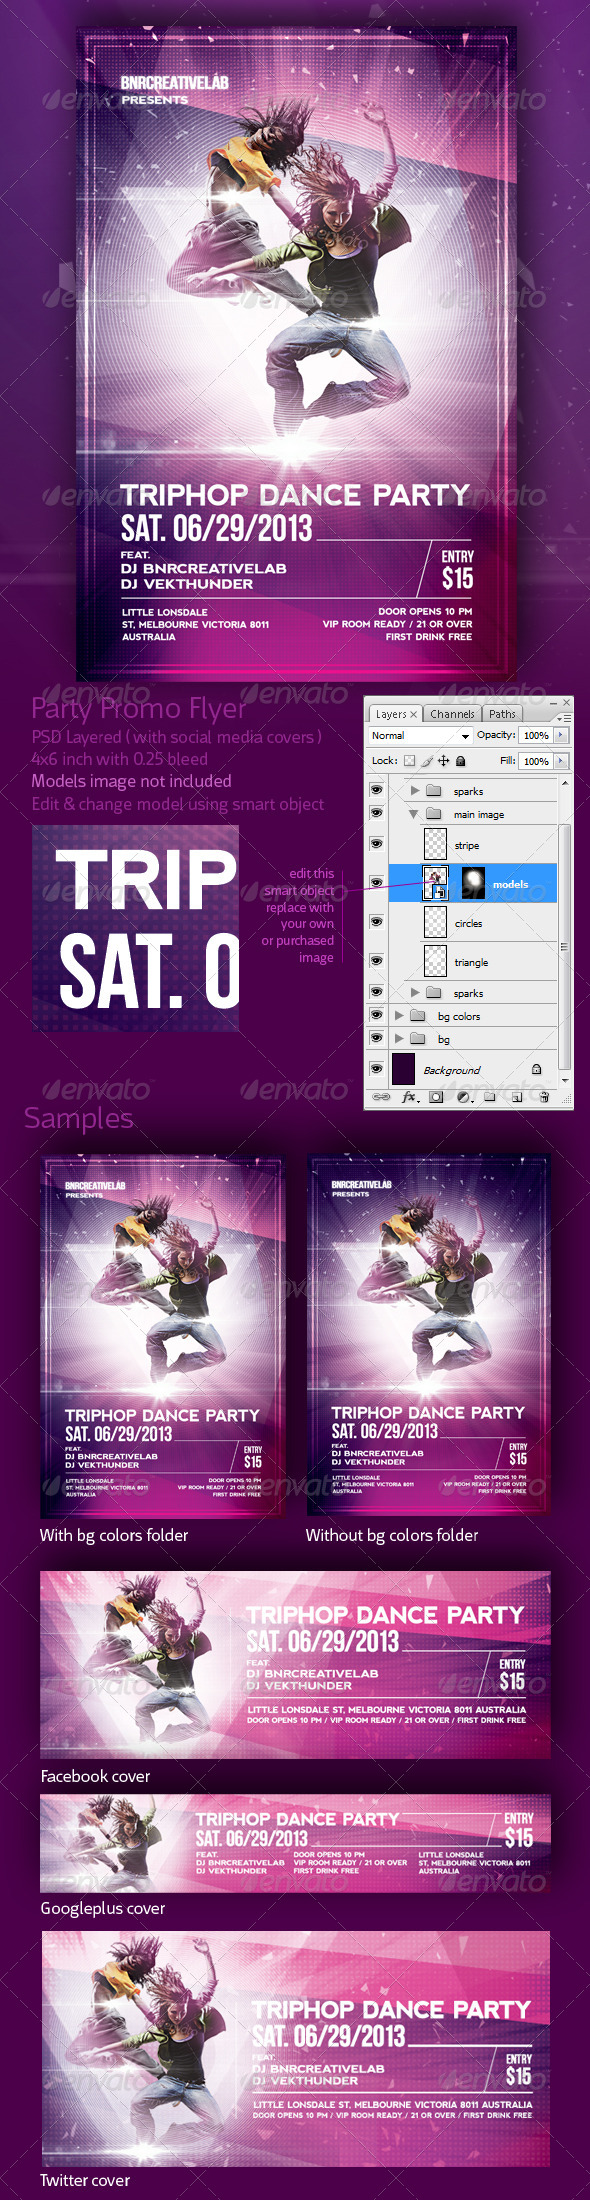 GraphicRiver Triphop Dance Party promo flyer 4838481